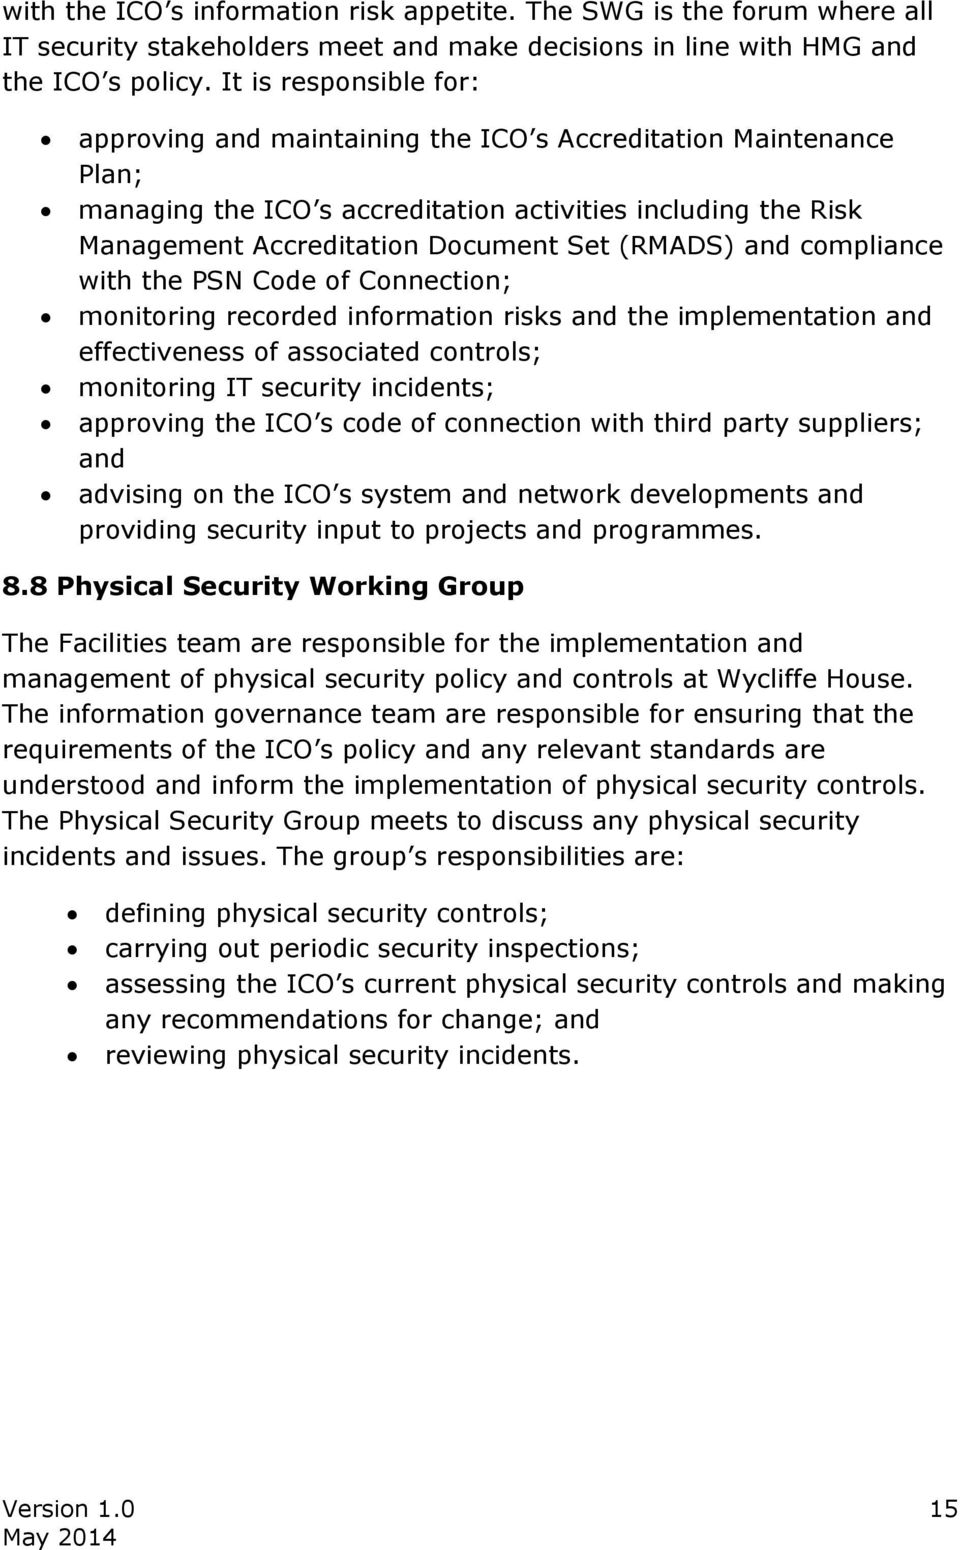 and compliance with the PSN Code of Connection; monitoring recorded information risks and the implementation and effectiveness of associated controls; monitoring IT security incidents; approving the